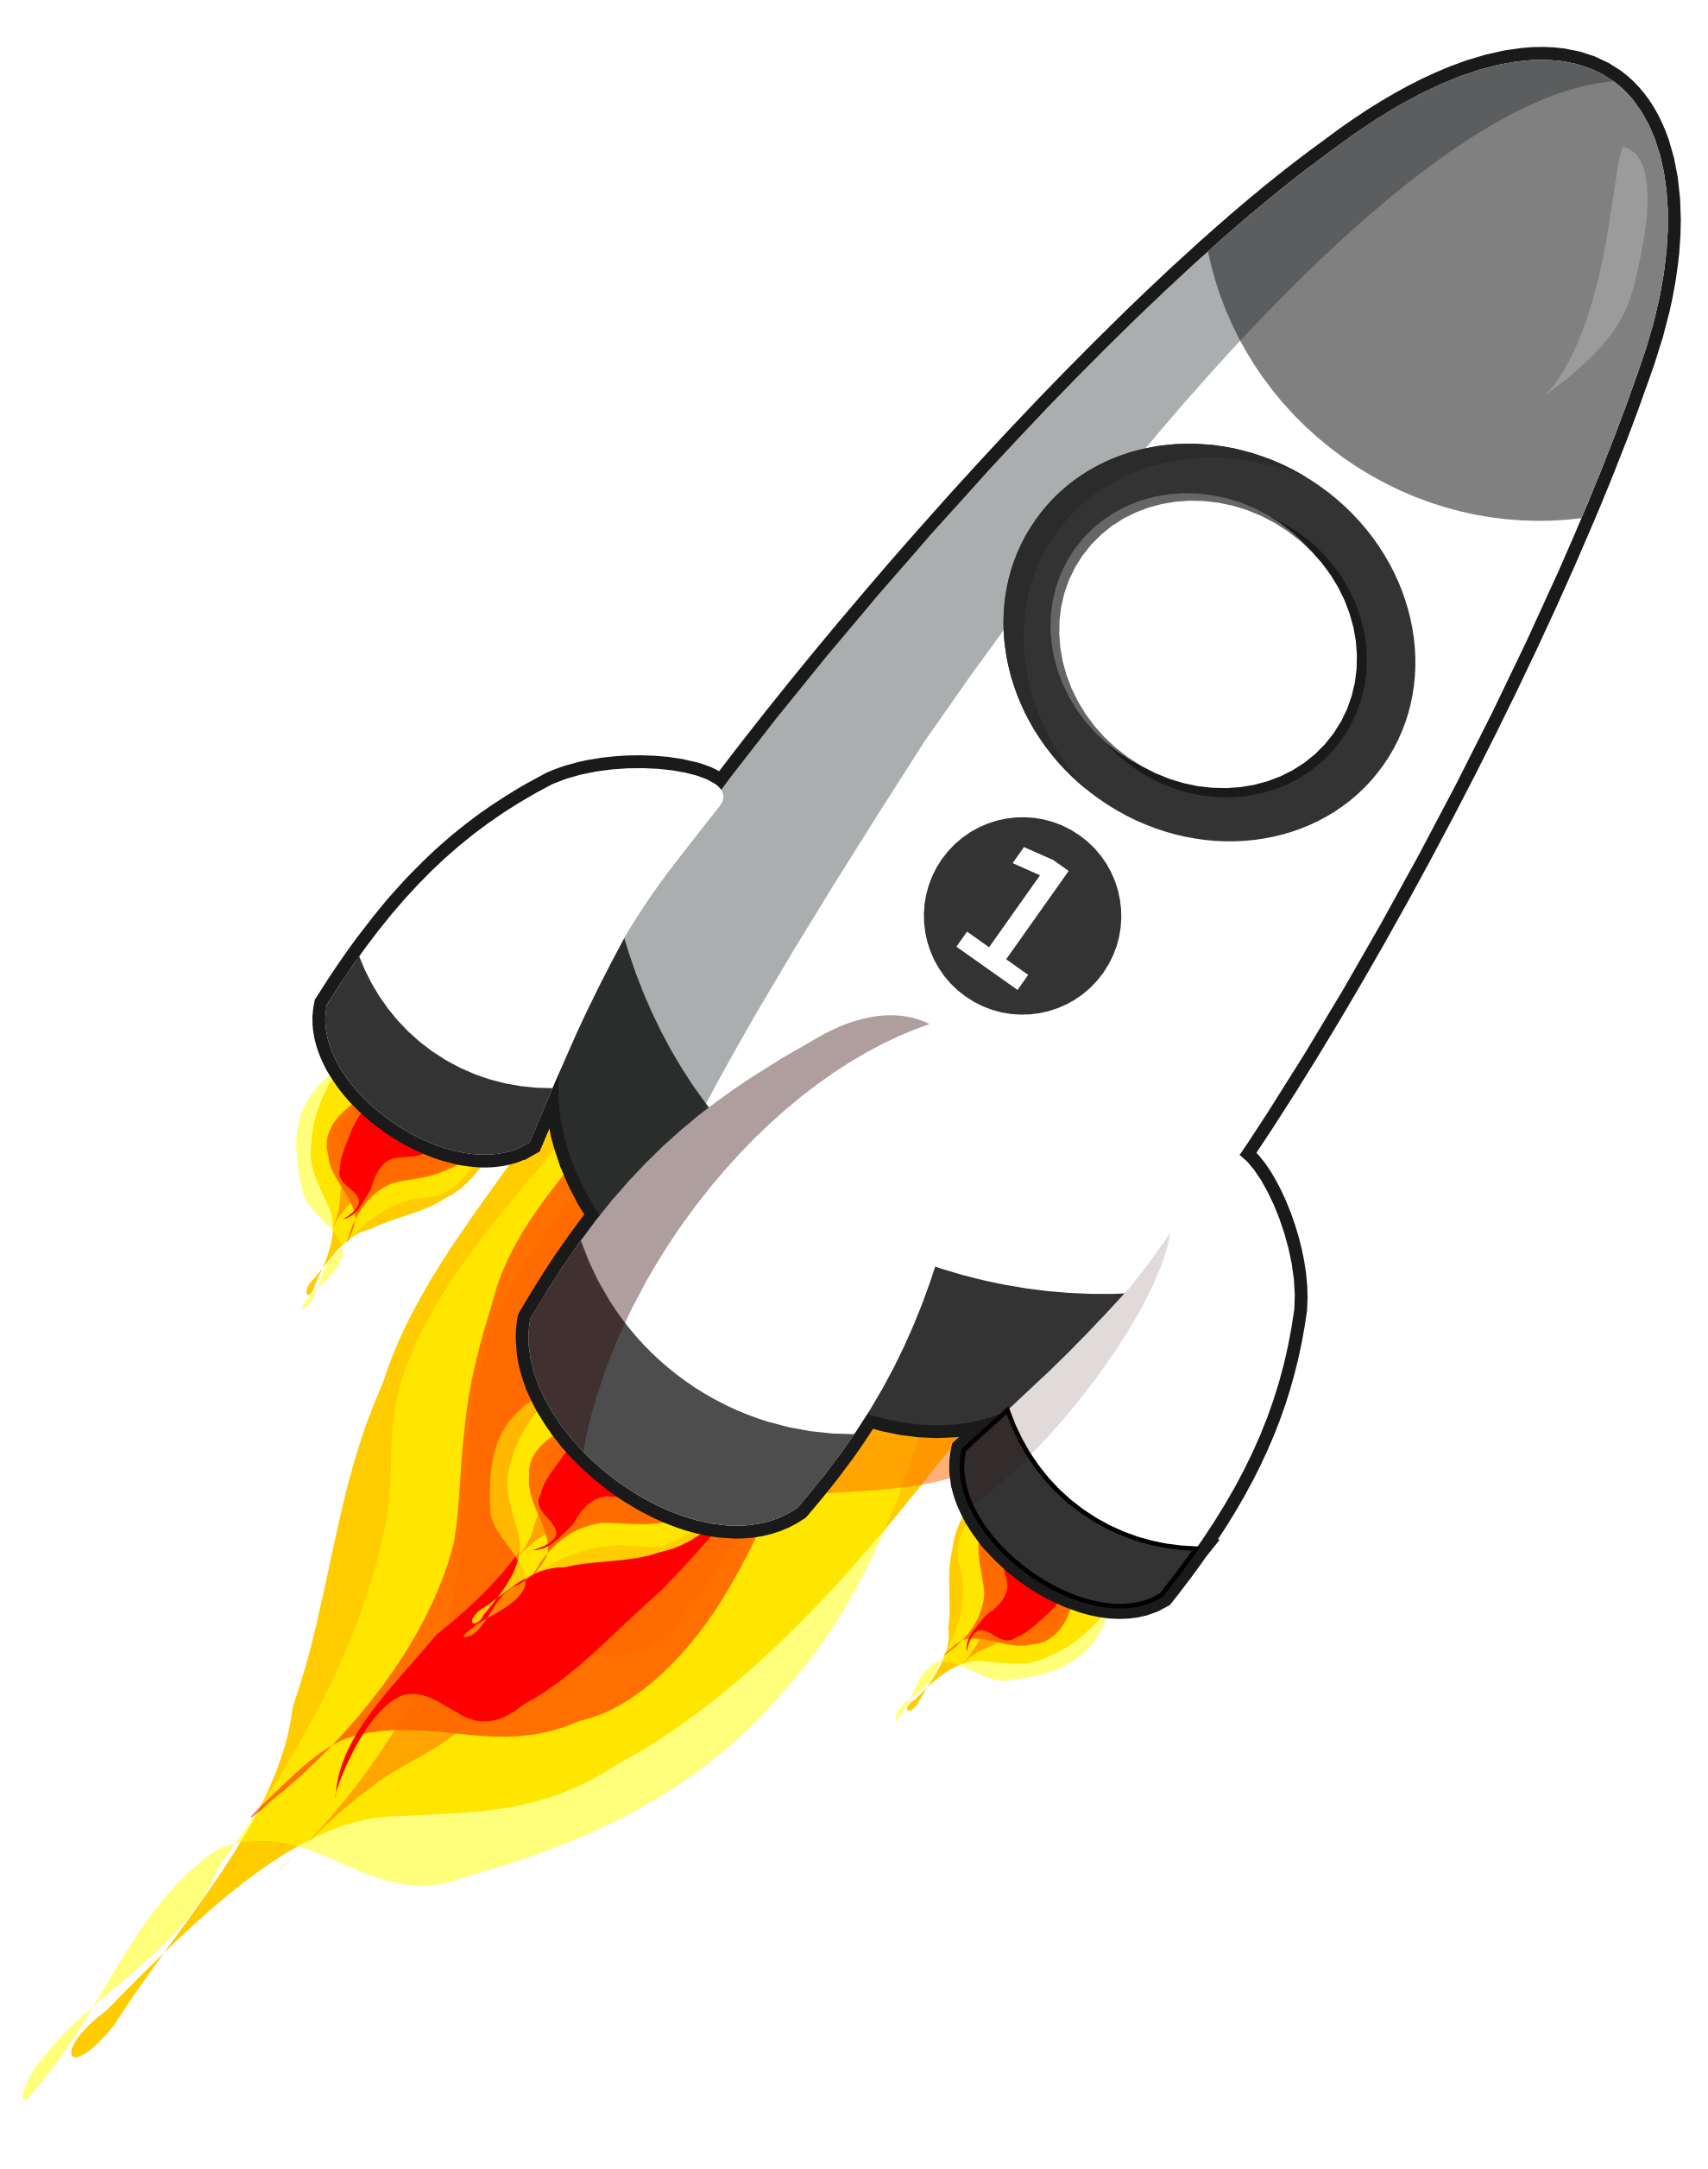 Rocket clipart black and white free clipart images 4